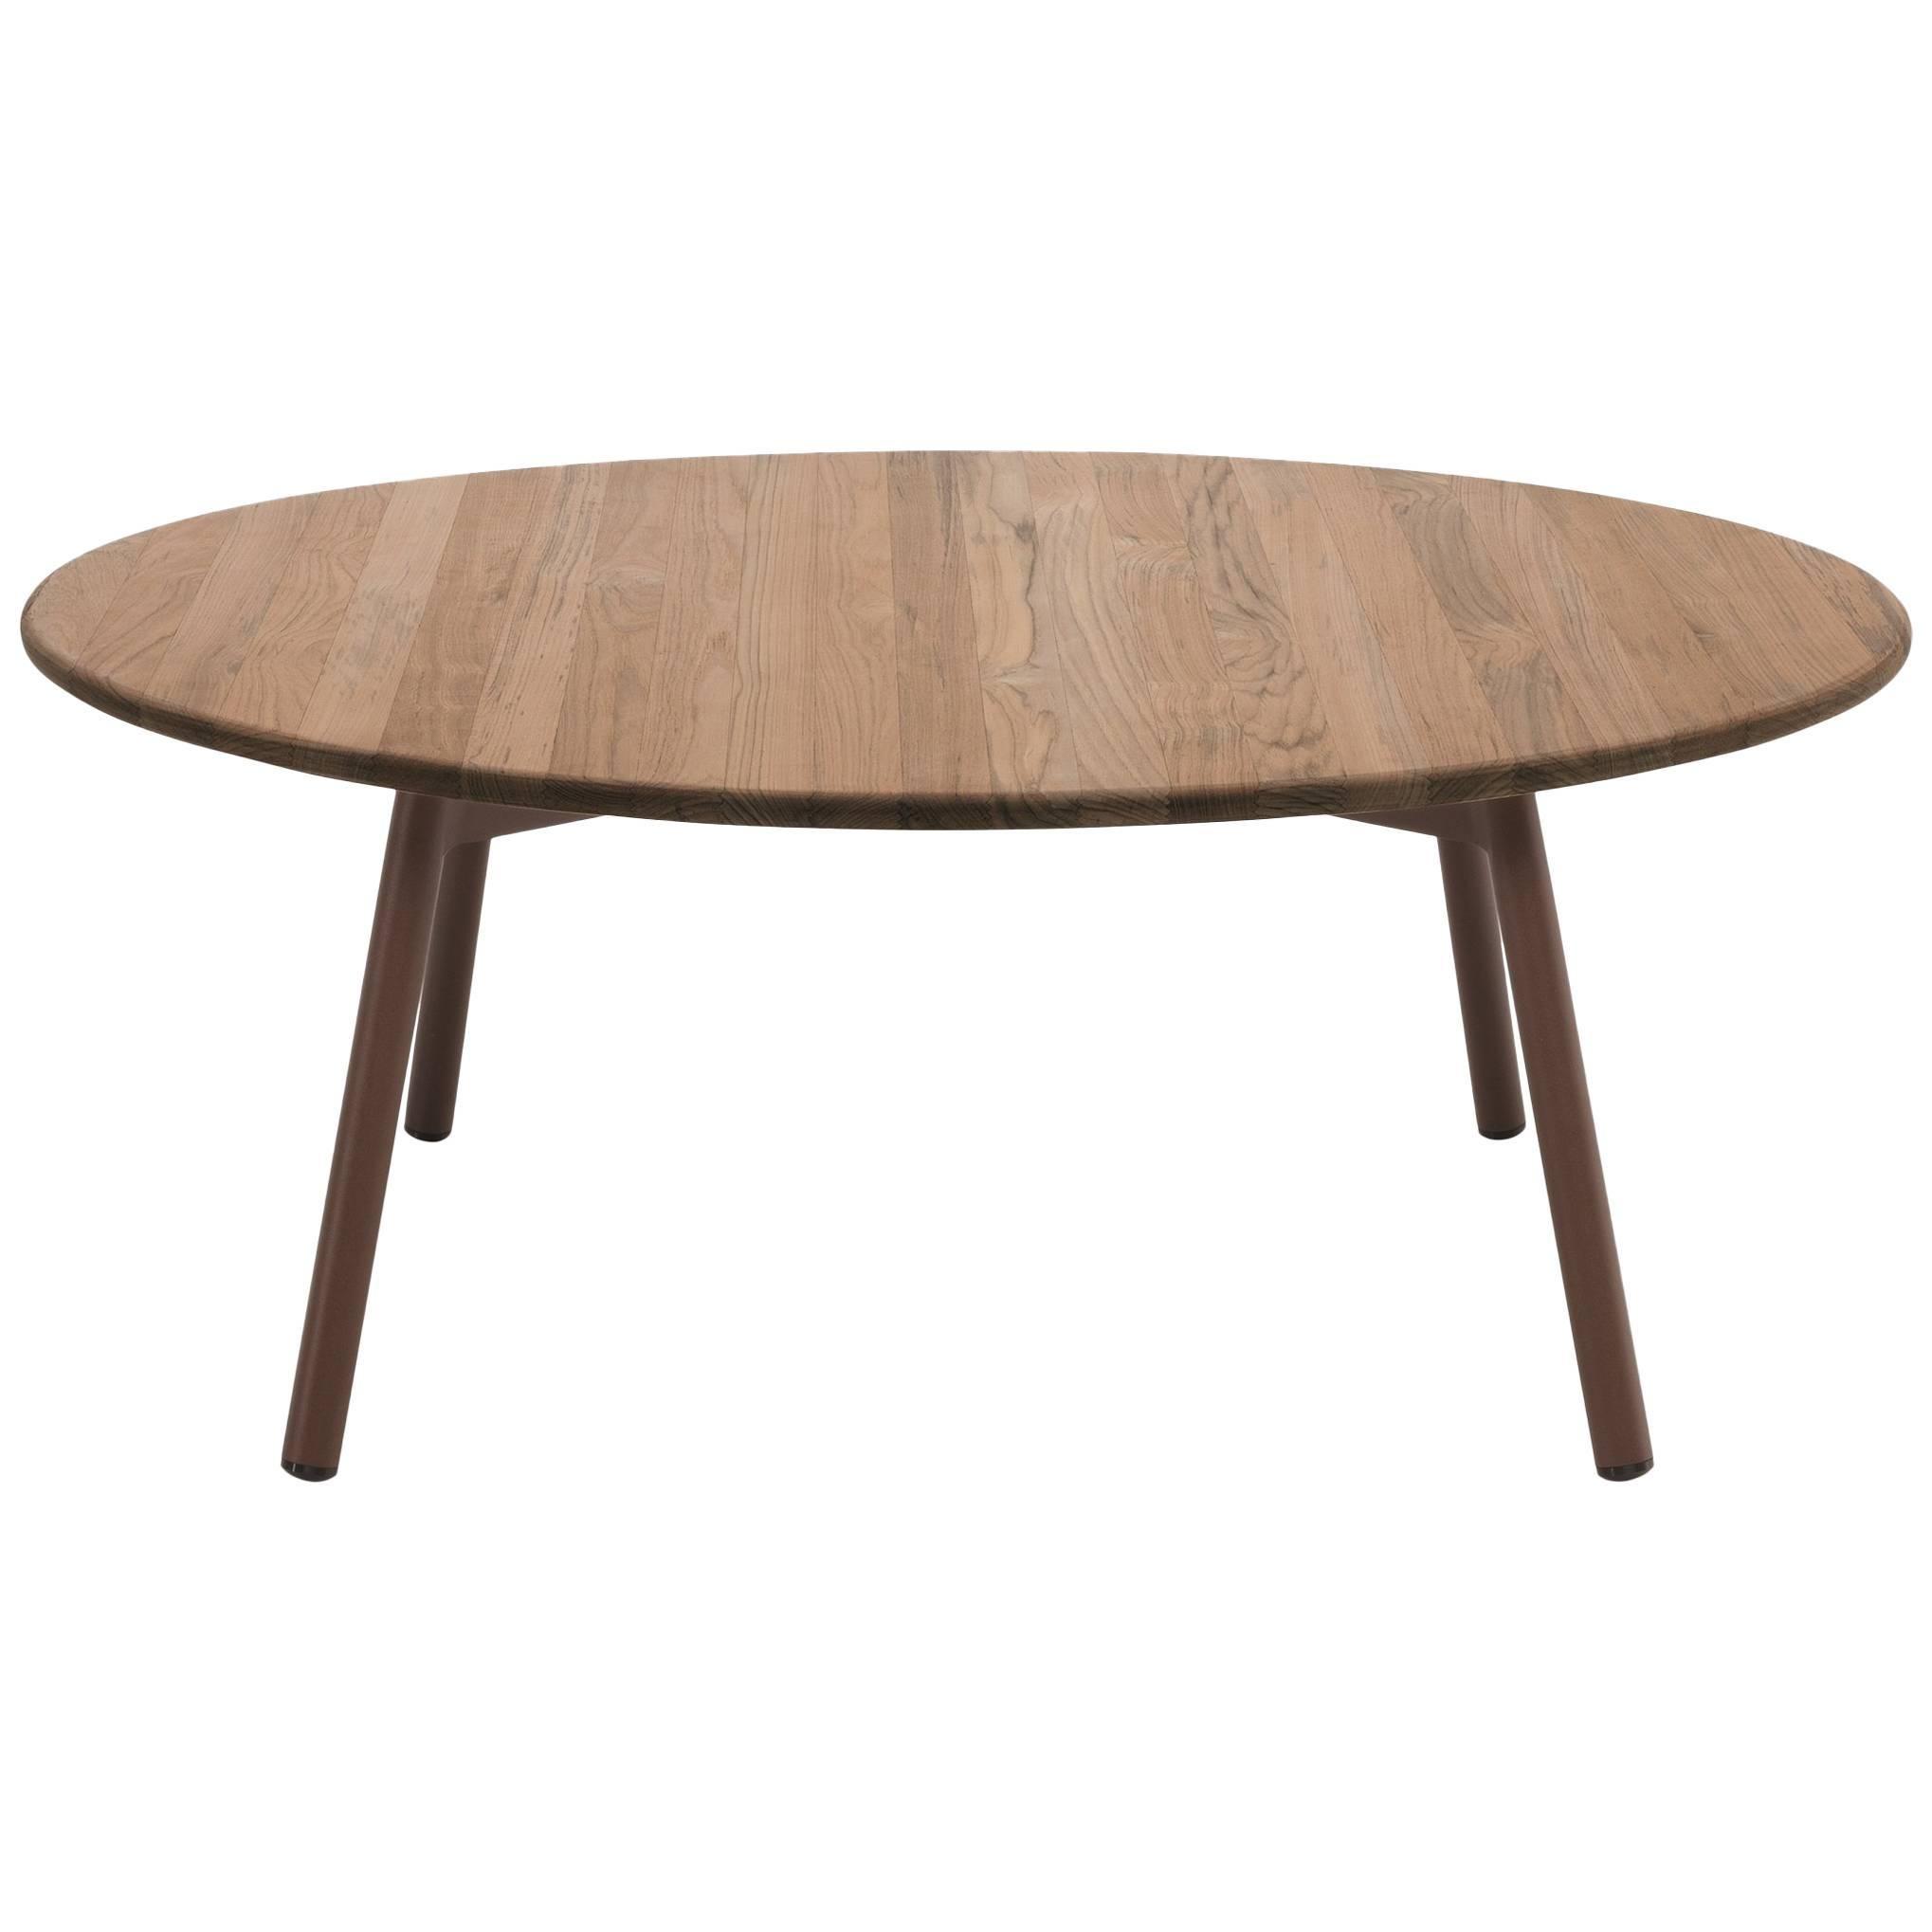 Roda Piper 012 Coffee Table Designed by Rodolfo Dordoni